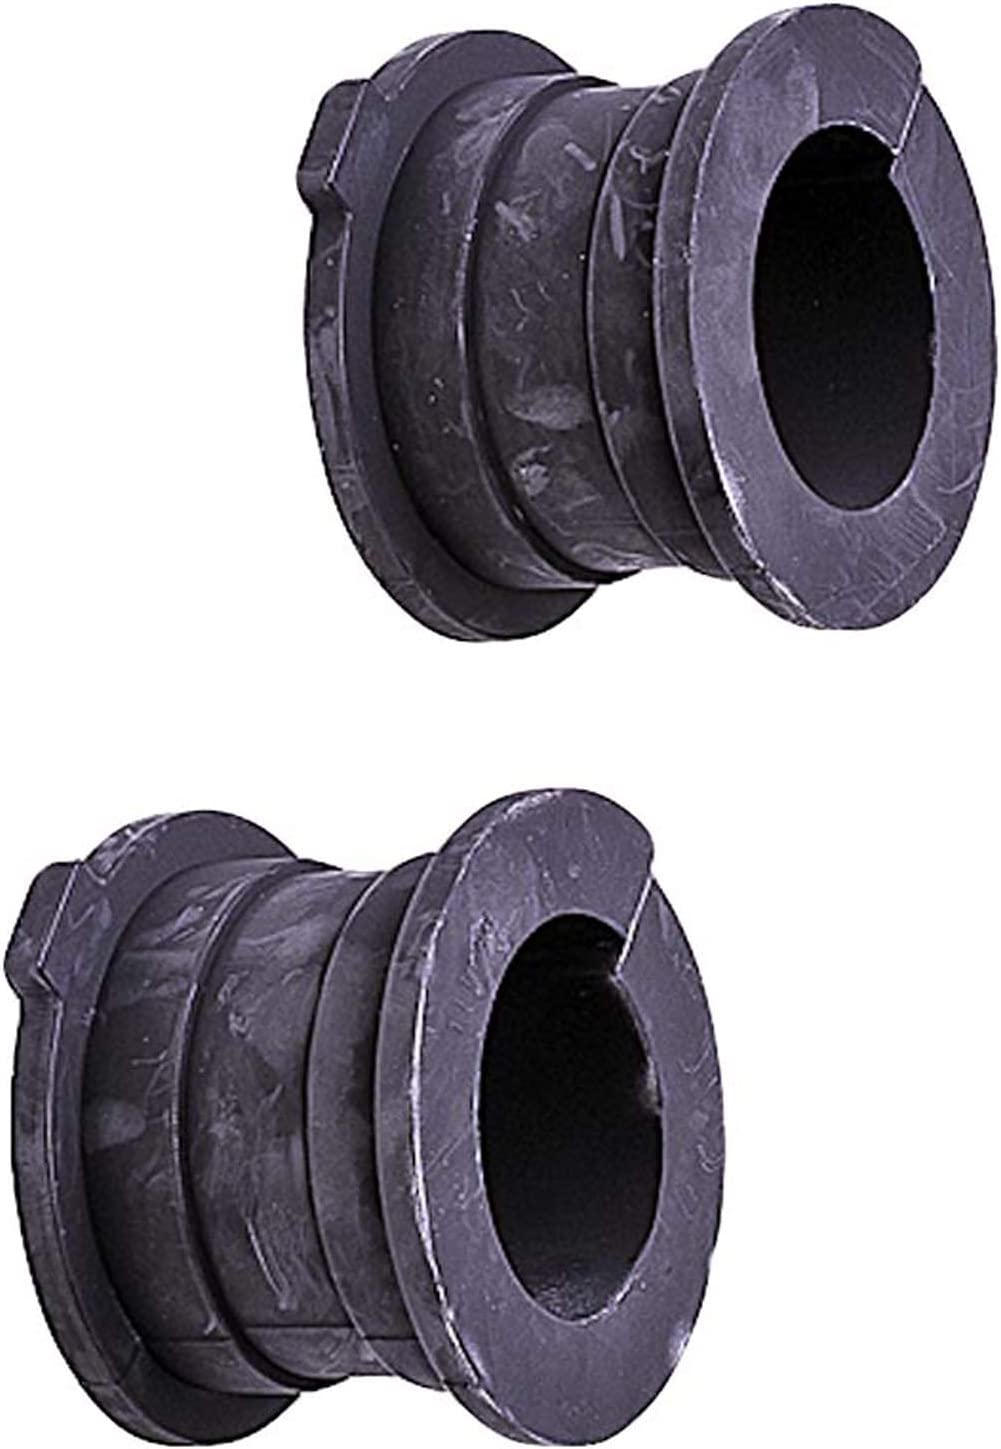 APDTY 147106 Milwaukee Reservation Mall Bushing